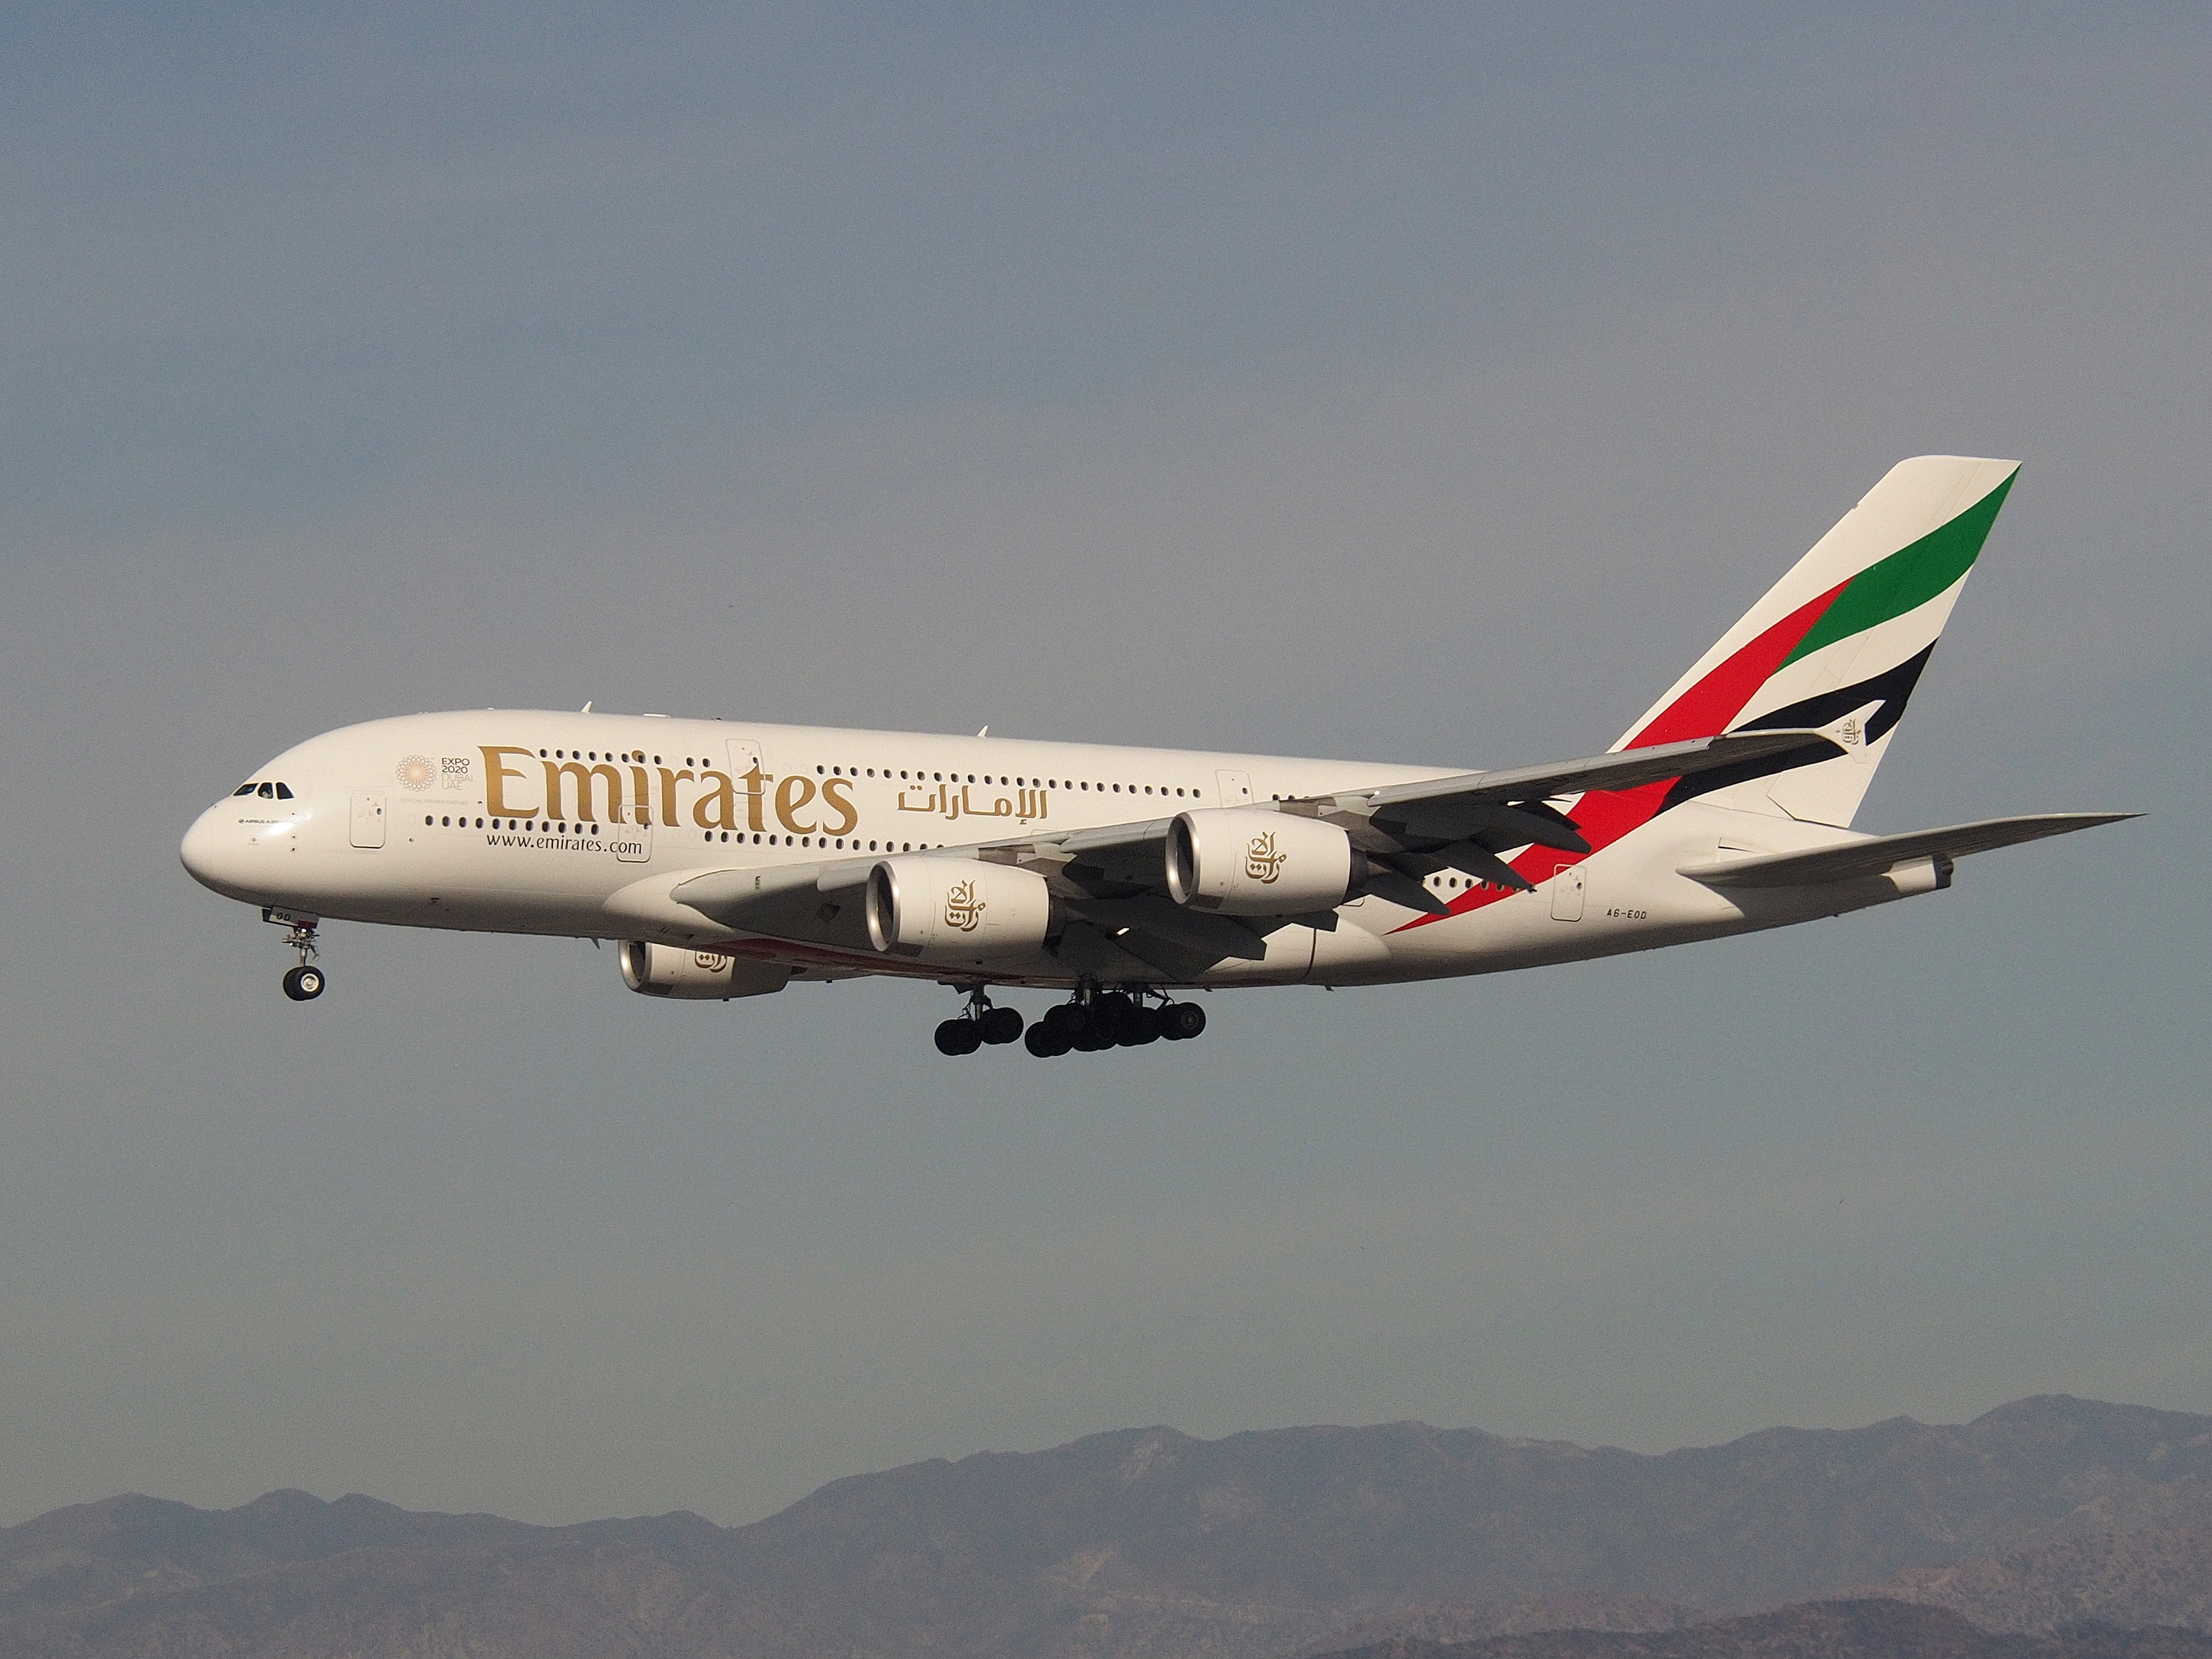 Emirates A380 on short final for LAX